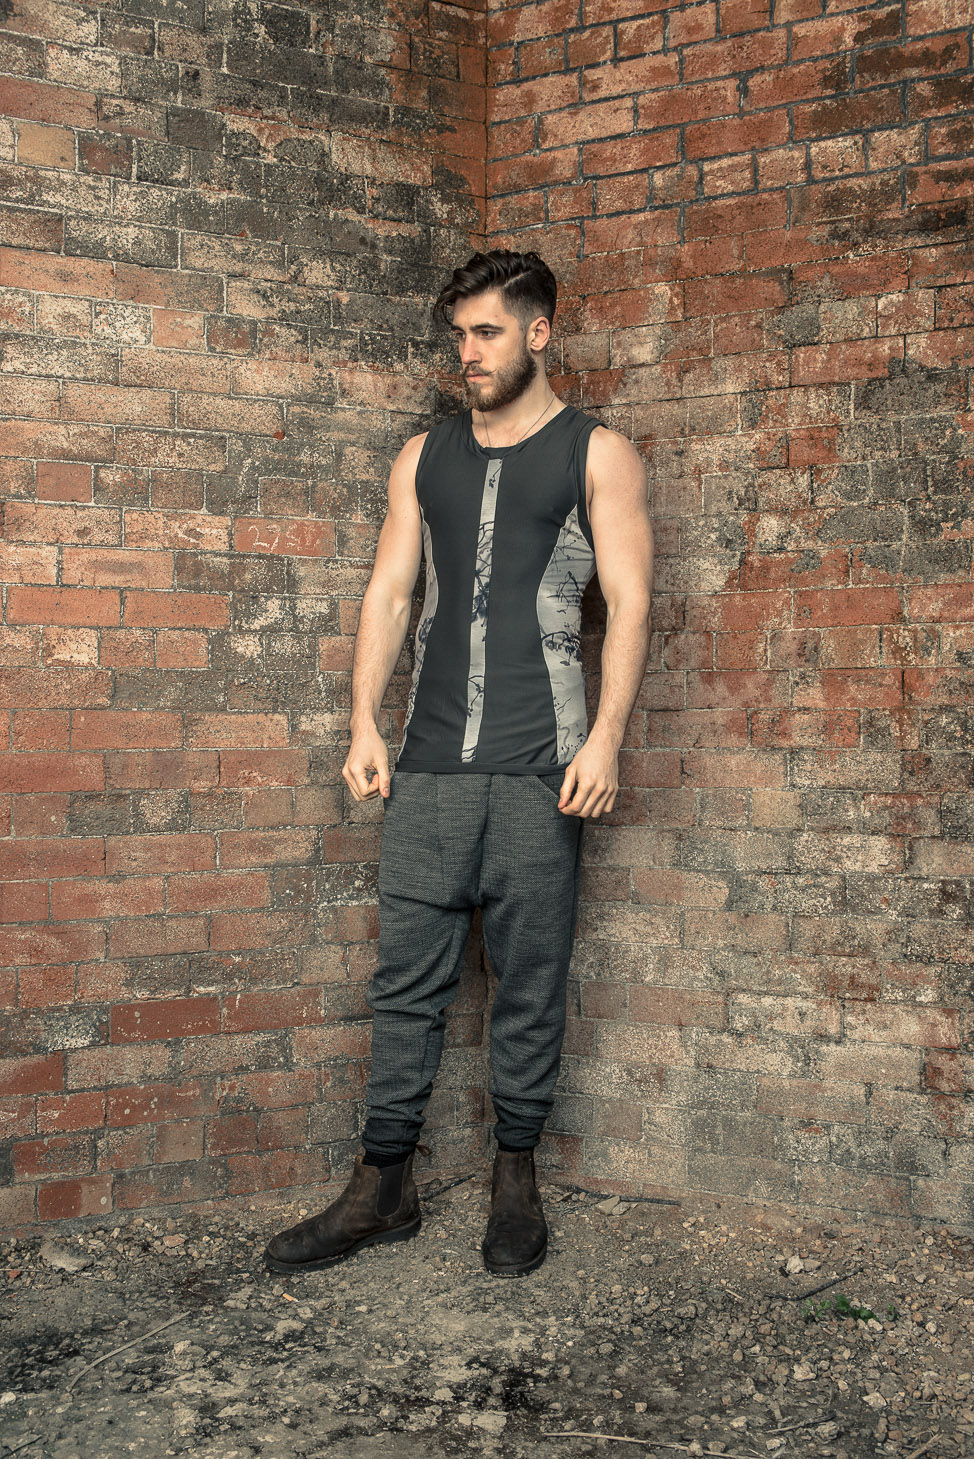 zaramia-ava-zaramiaava-leeds-fashion-designer-ethical-sustainable-tailored-minimalist-stripe-fitted-versatile-drape-grey-tshirt-top-vest-hareem-trousers-black-grey-texture-styling-13